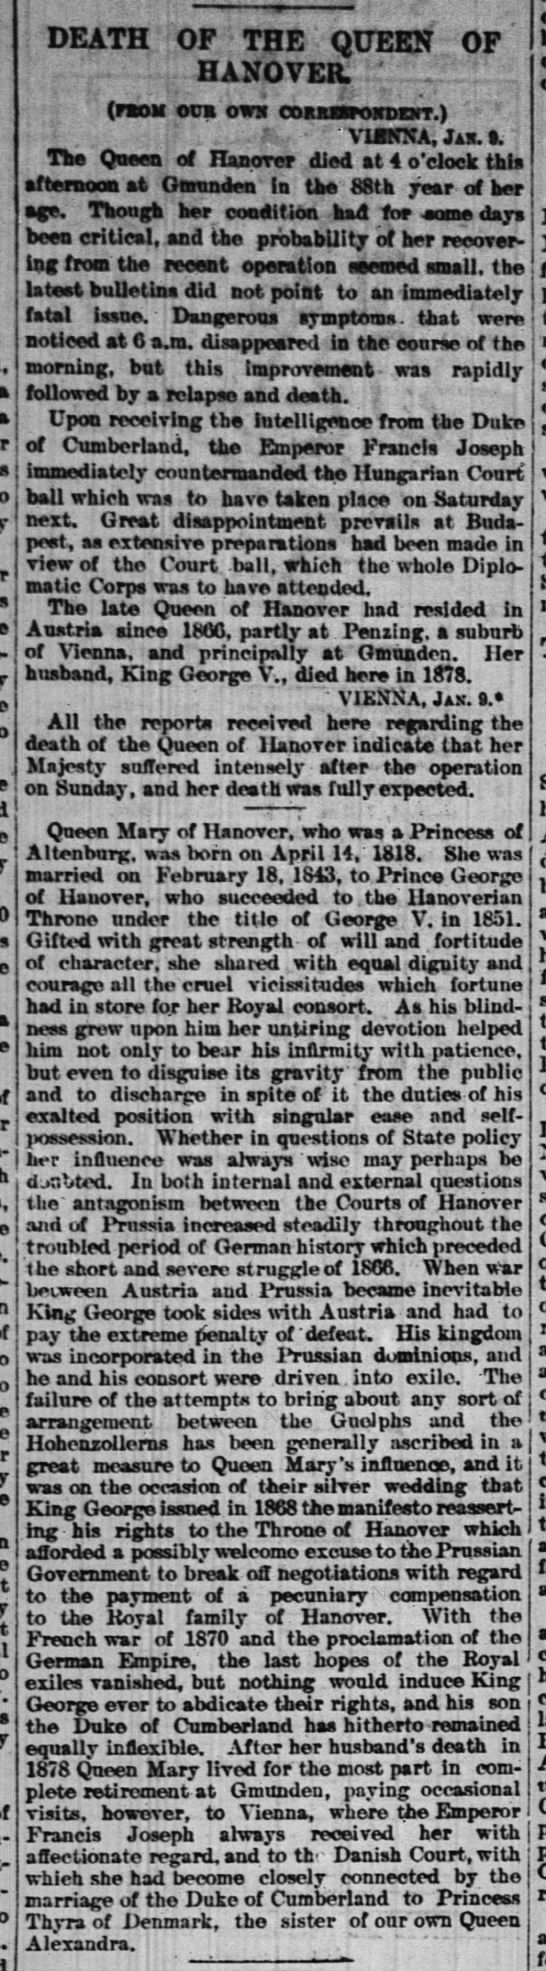 Death of the Queen of Hanover -